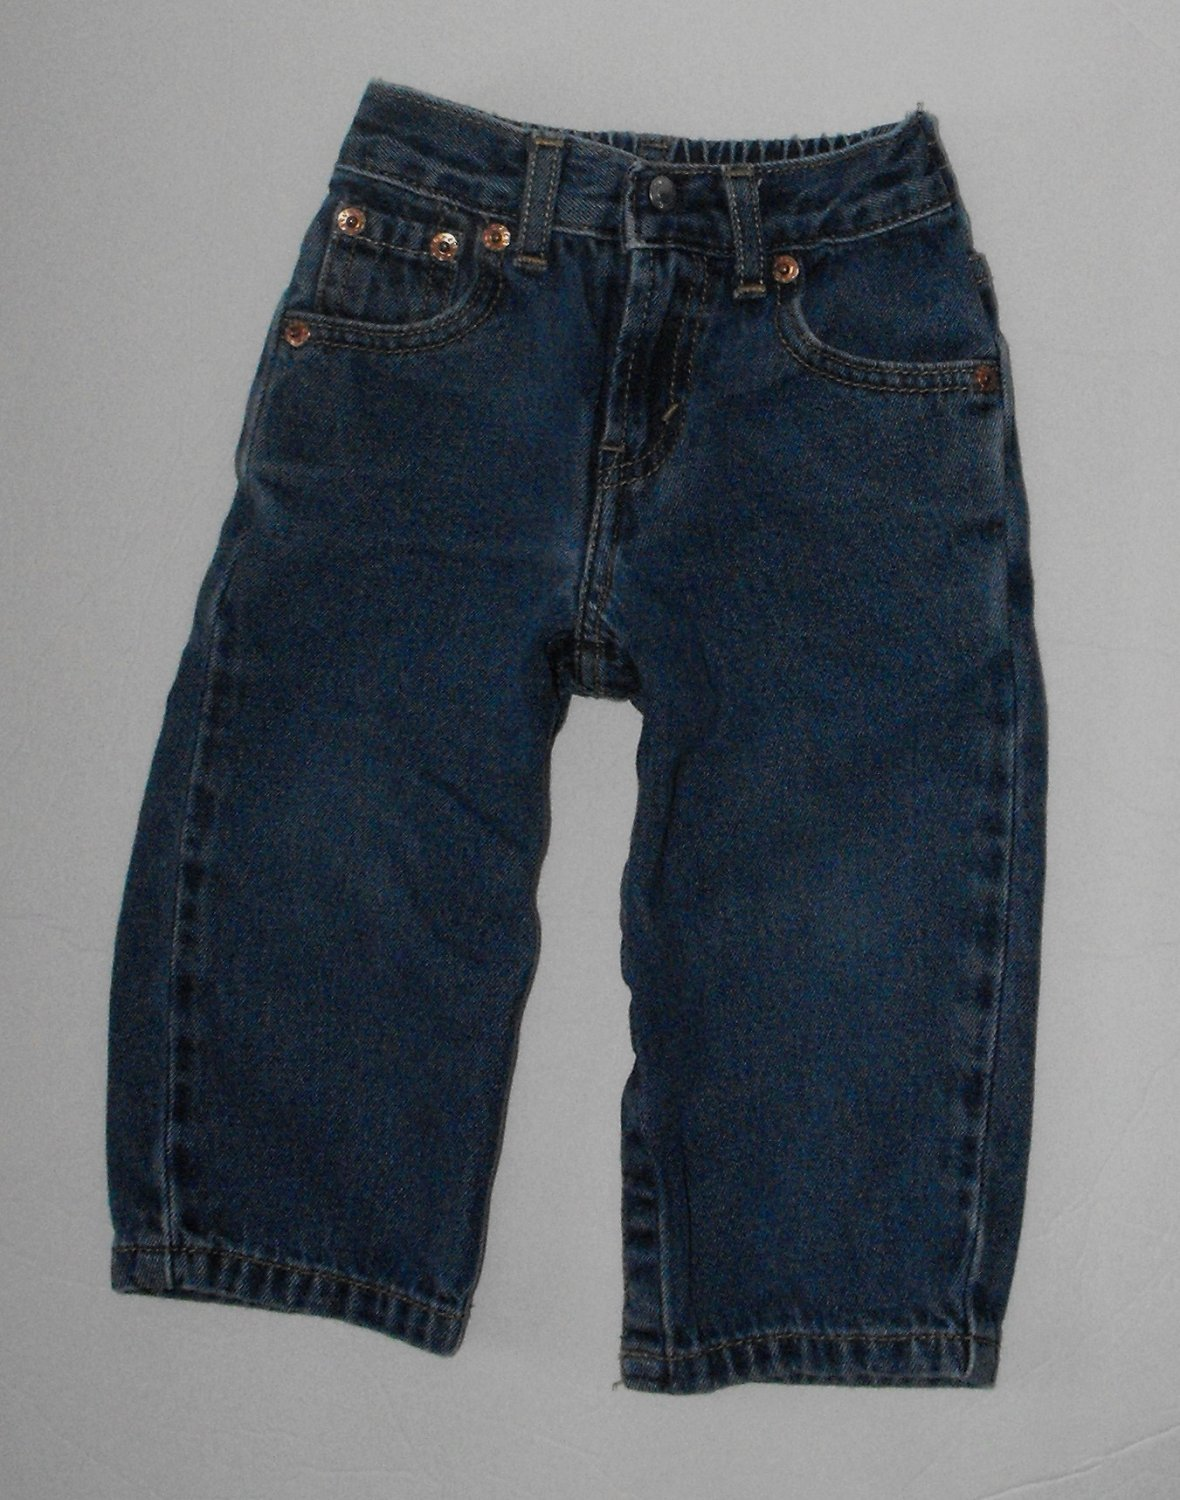 *4/11*SOLD~Levi's Baby Boys 18-24 Months Jeans Snap Legs